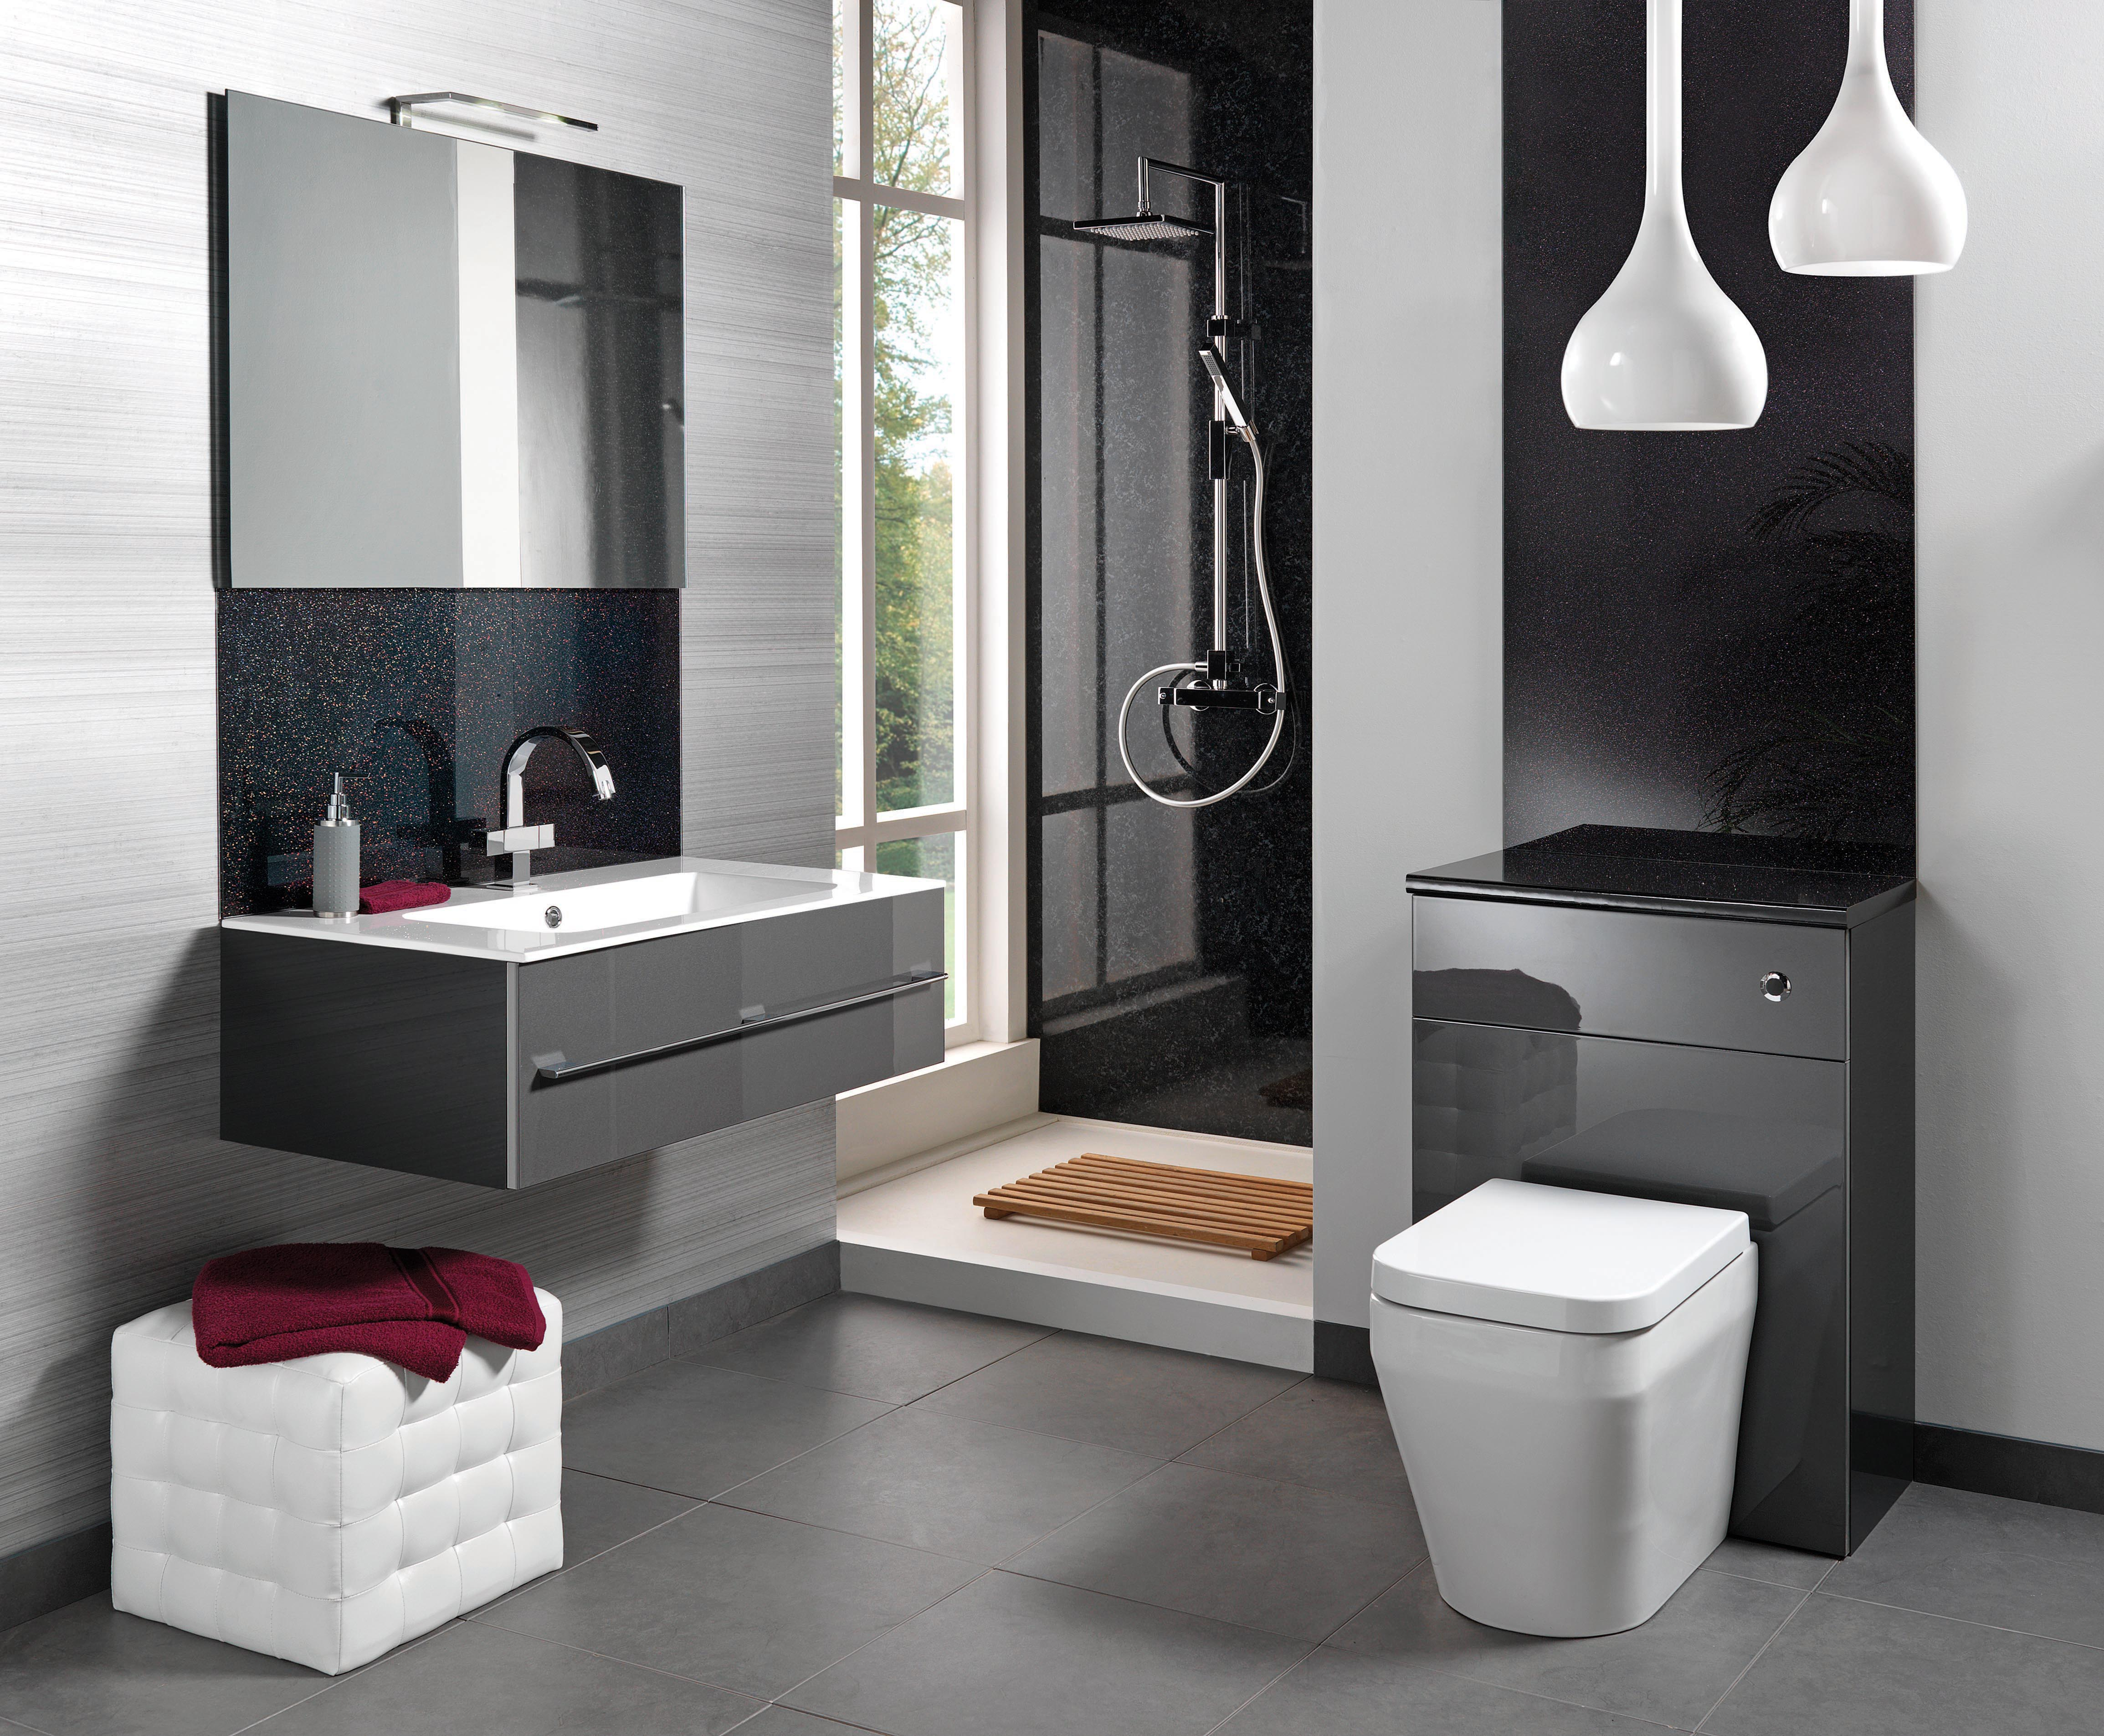 Bathroom Suites Glasgow Wholesale Domestic Bathroom Blog A Complete Guide To